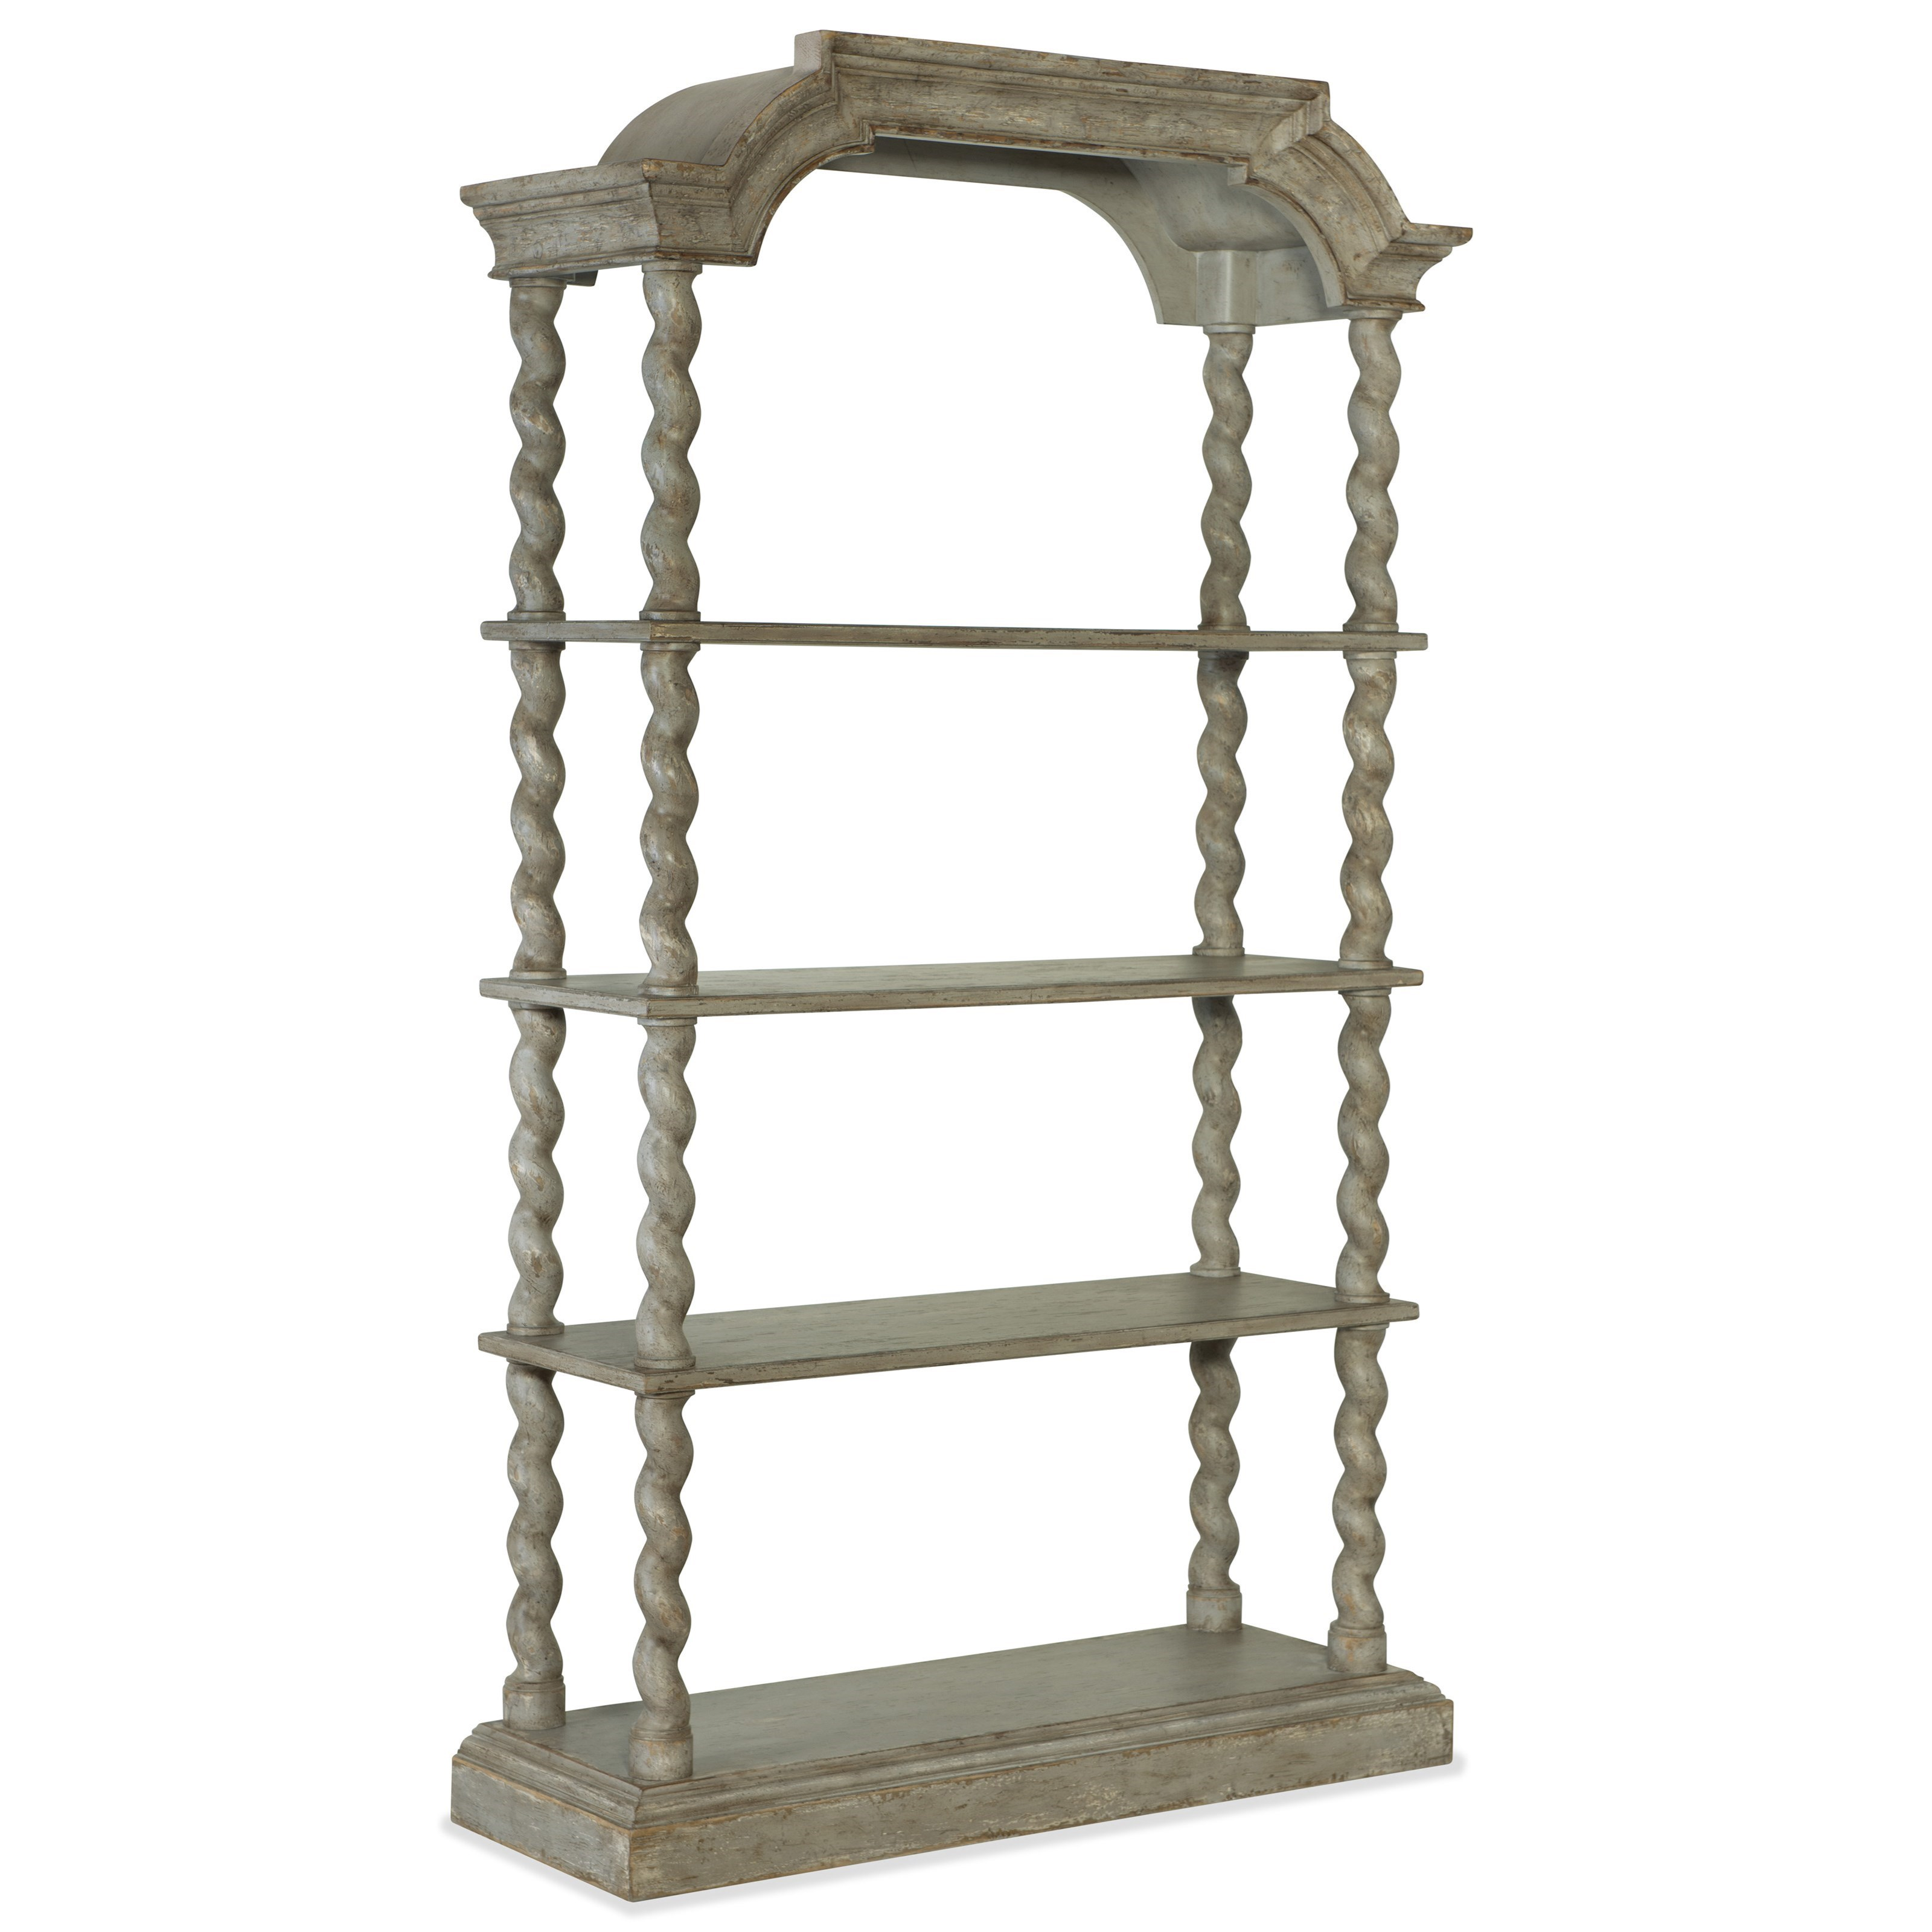 Alfresco Lettore Etagere by Hooker Furniture at Baer's Furniture